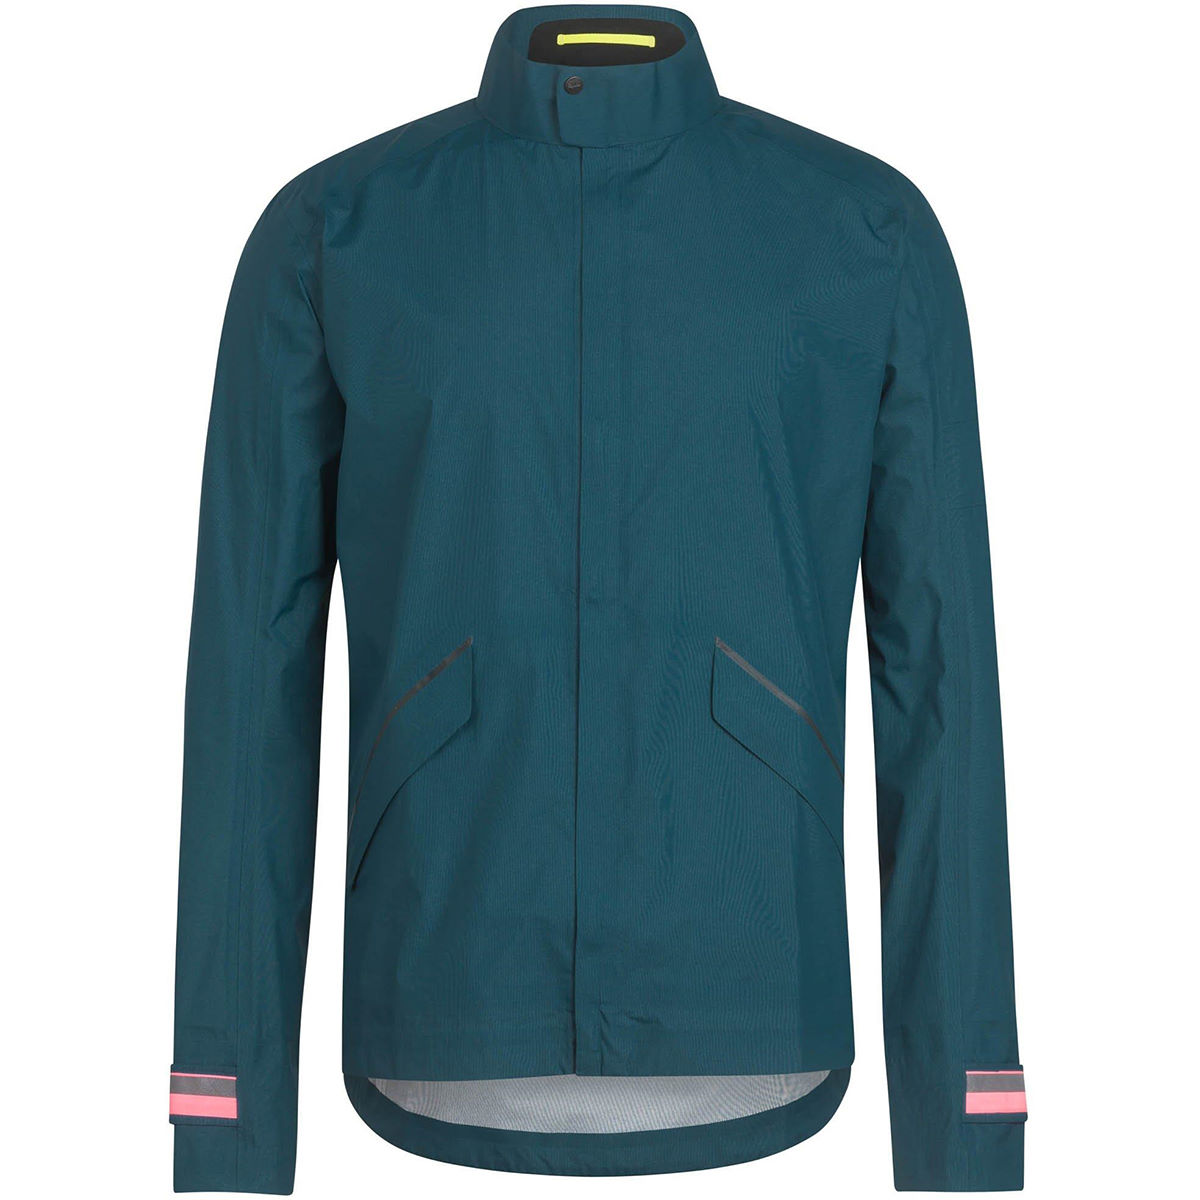 Veste Rapha (compacte, imperméable) - XS Dark Green  Vestes